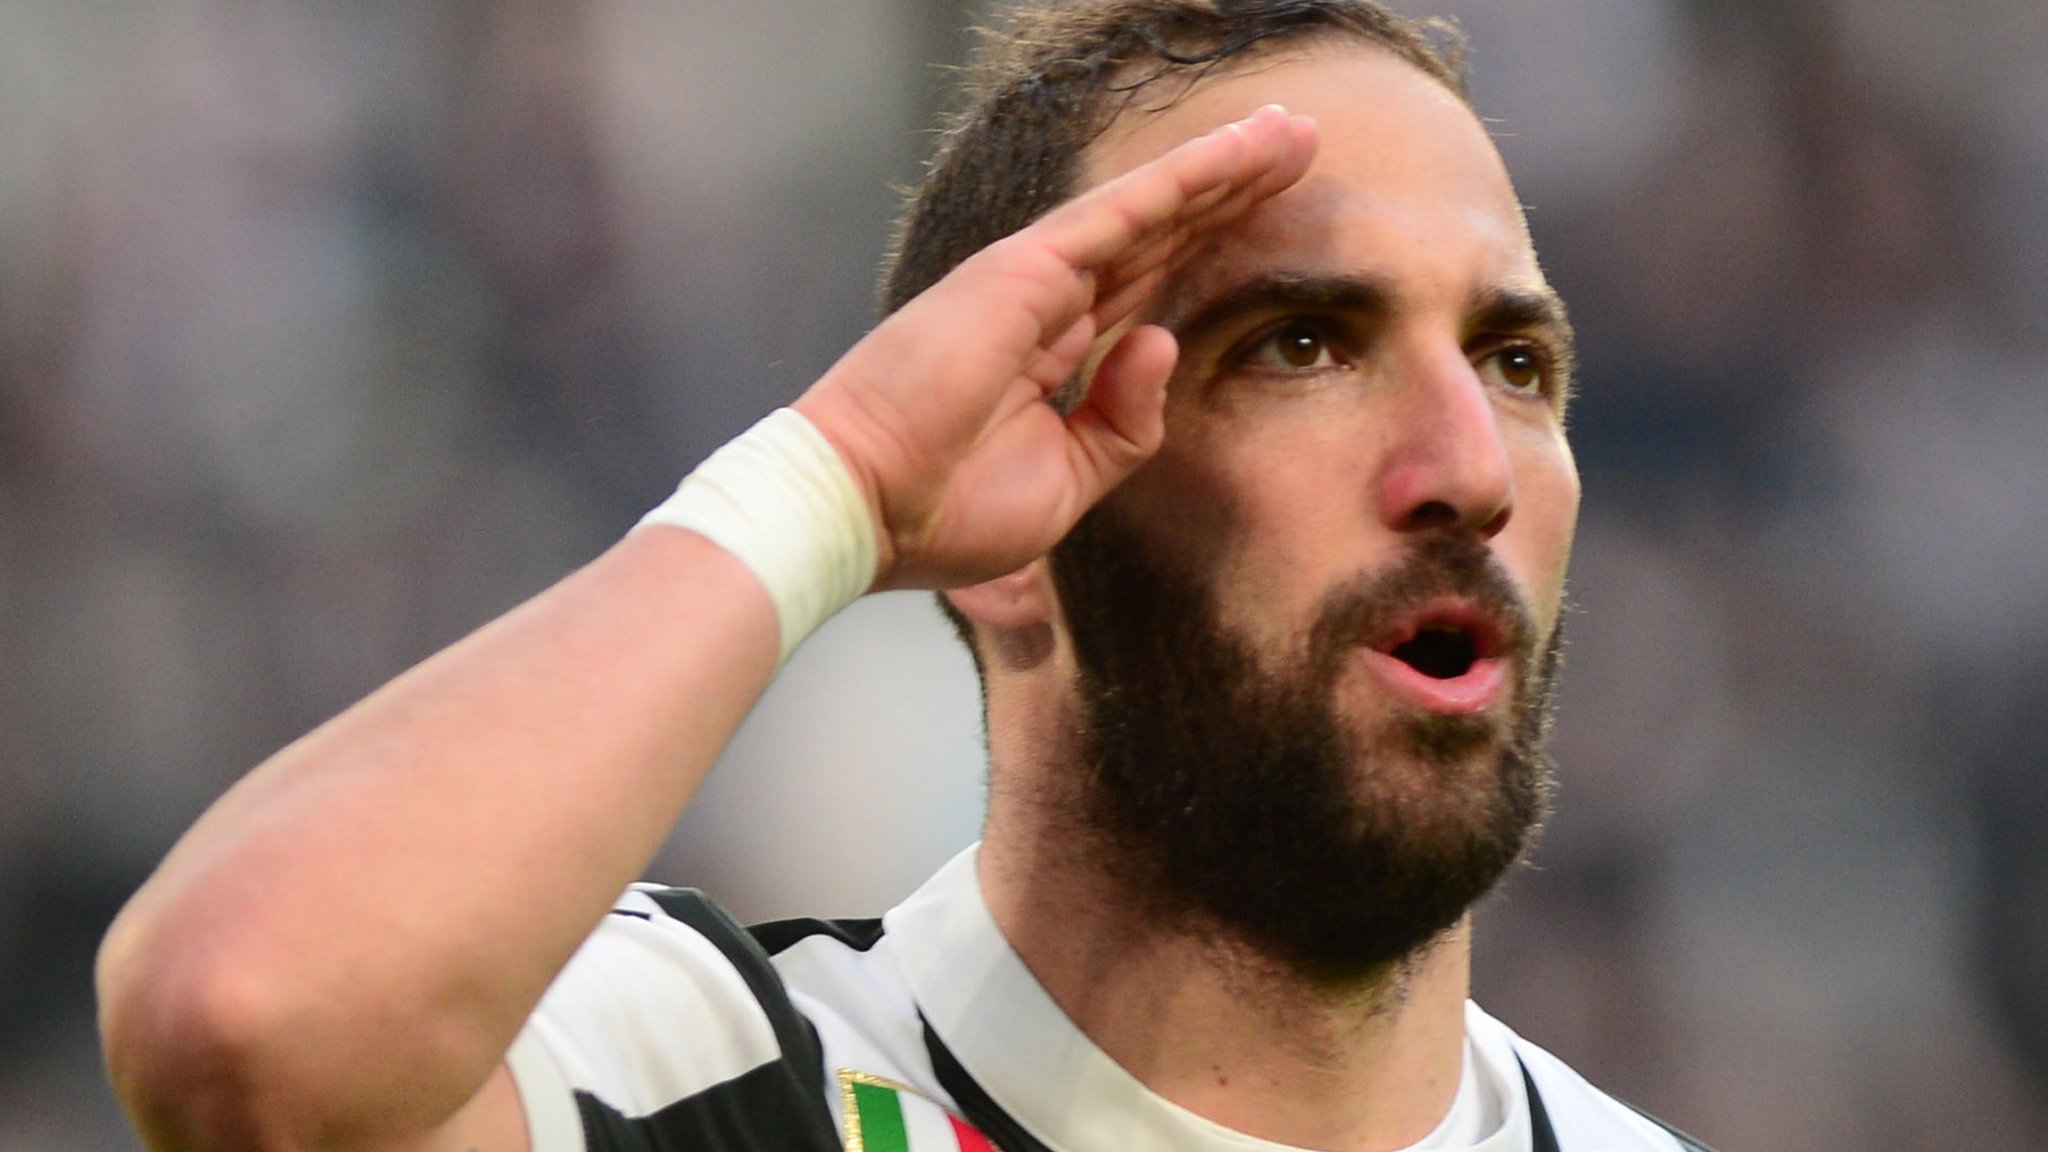 Juventus hit seven, plus two goals direct from corners in one match - Italy round-up